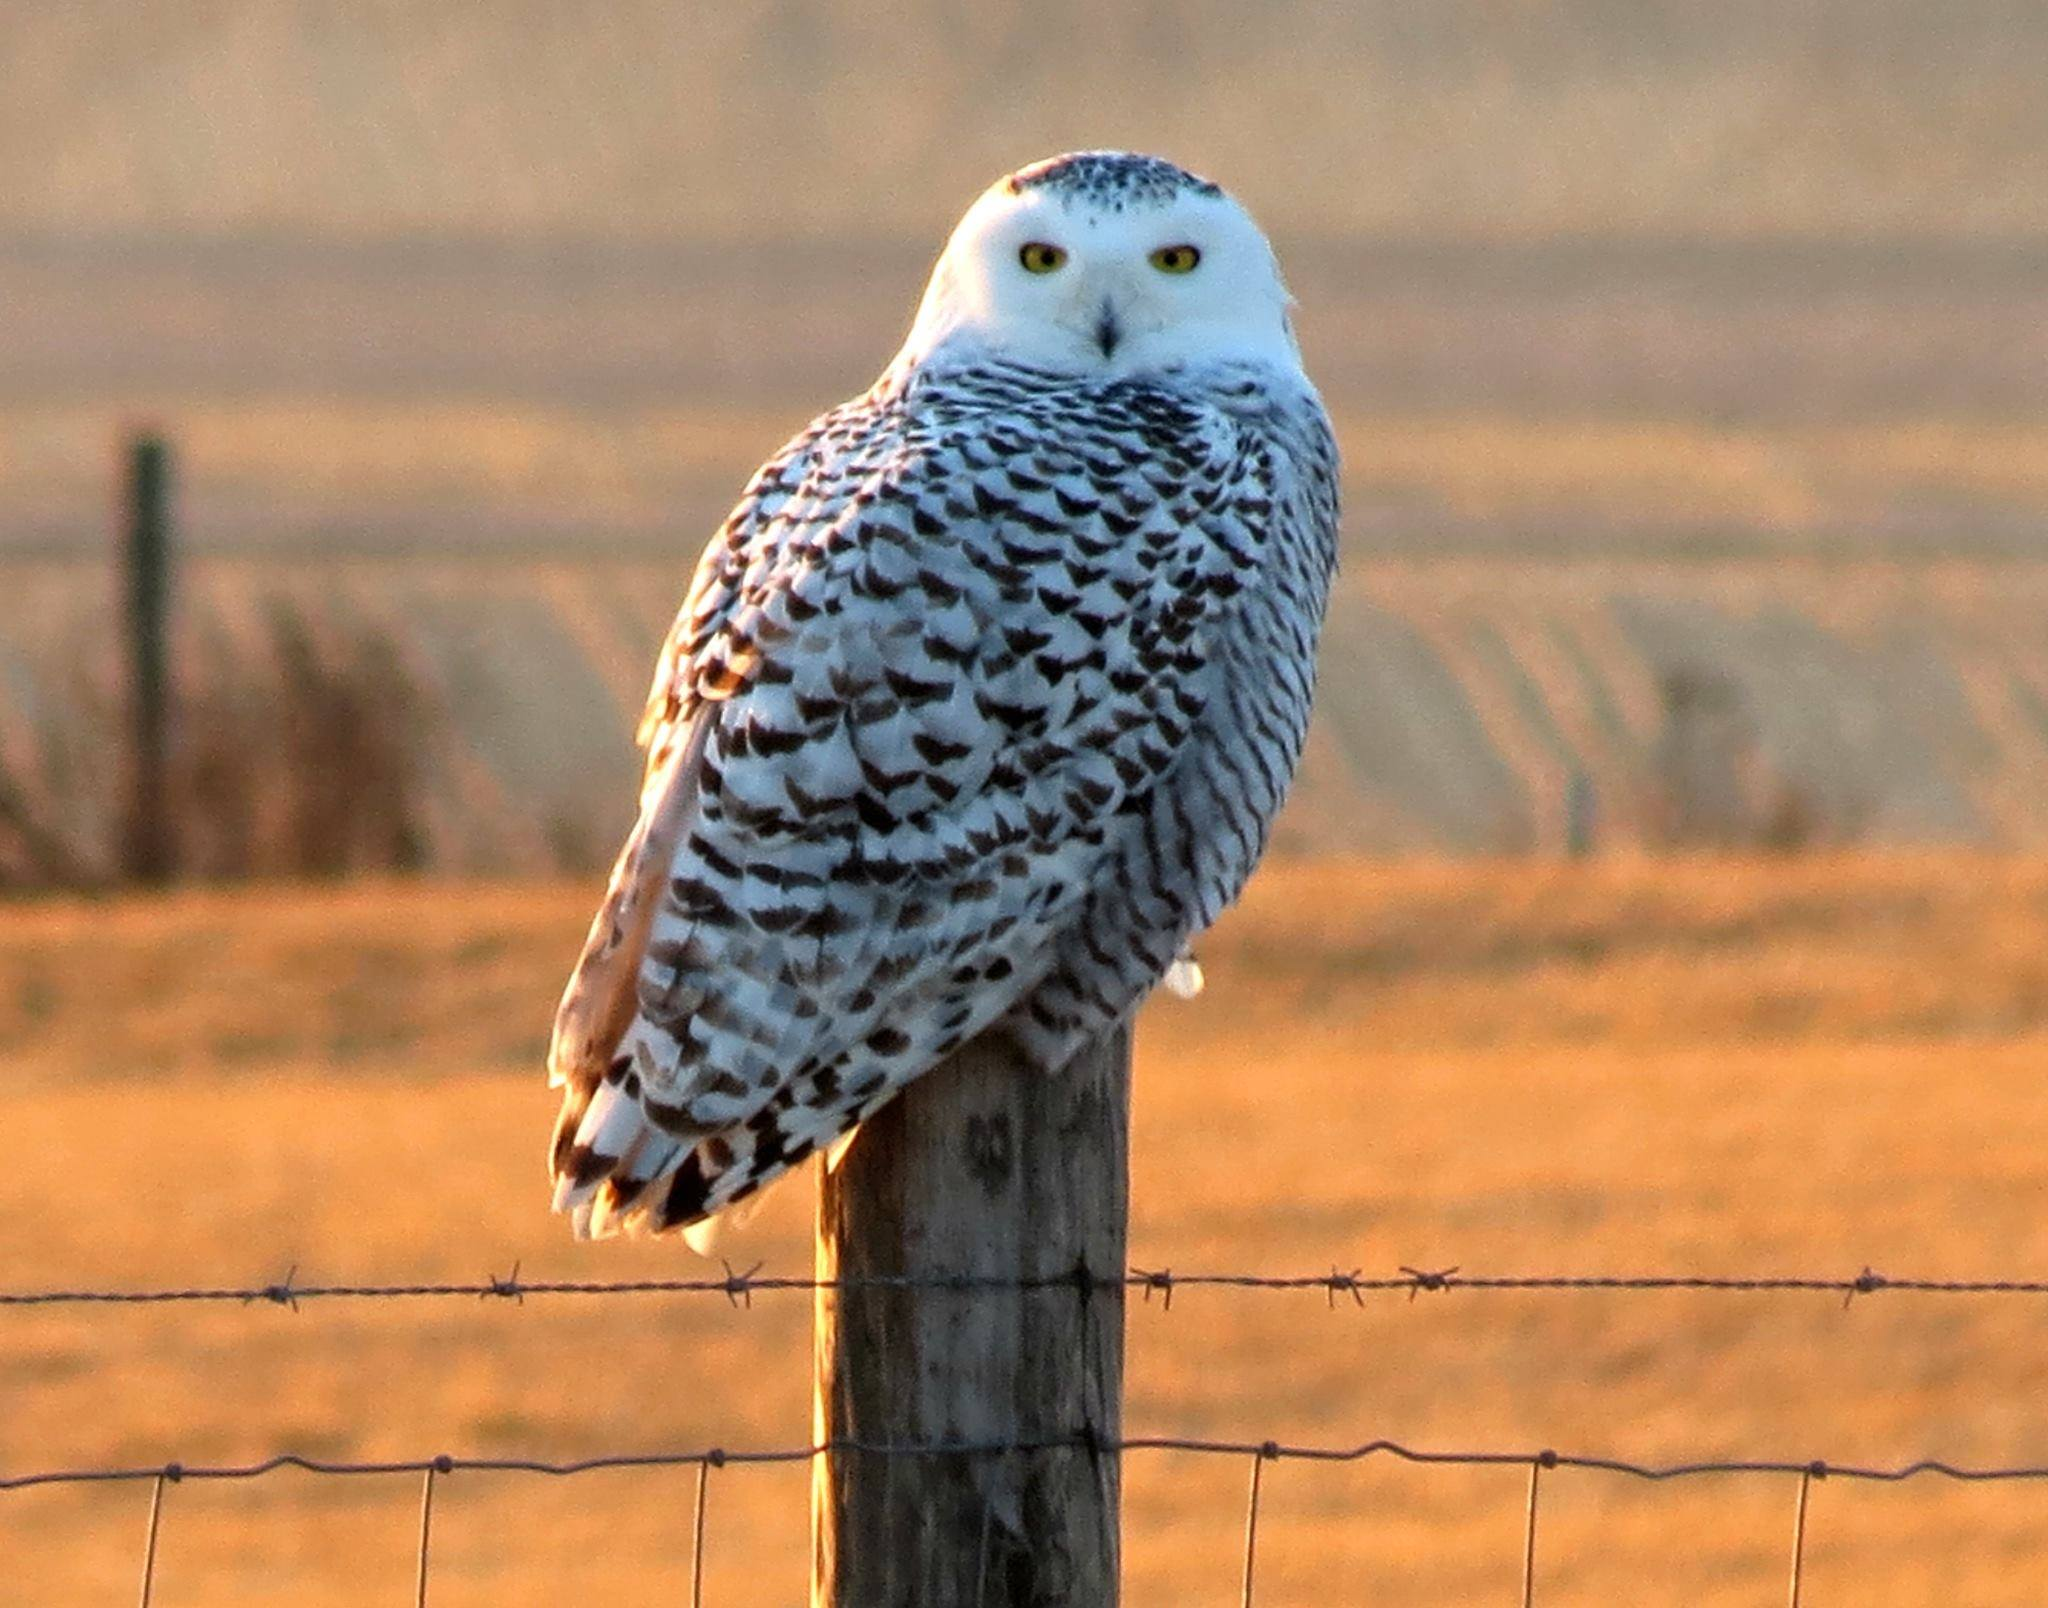 A snowy owl perches in the late afternoon sun. Photo by Lester Doyle